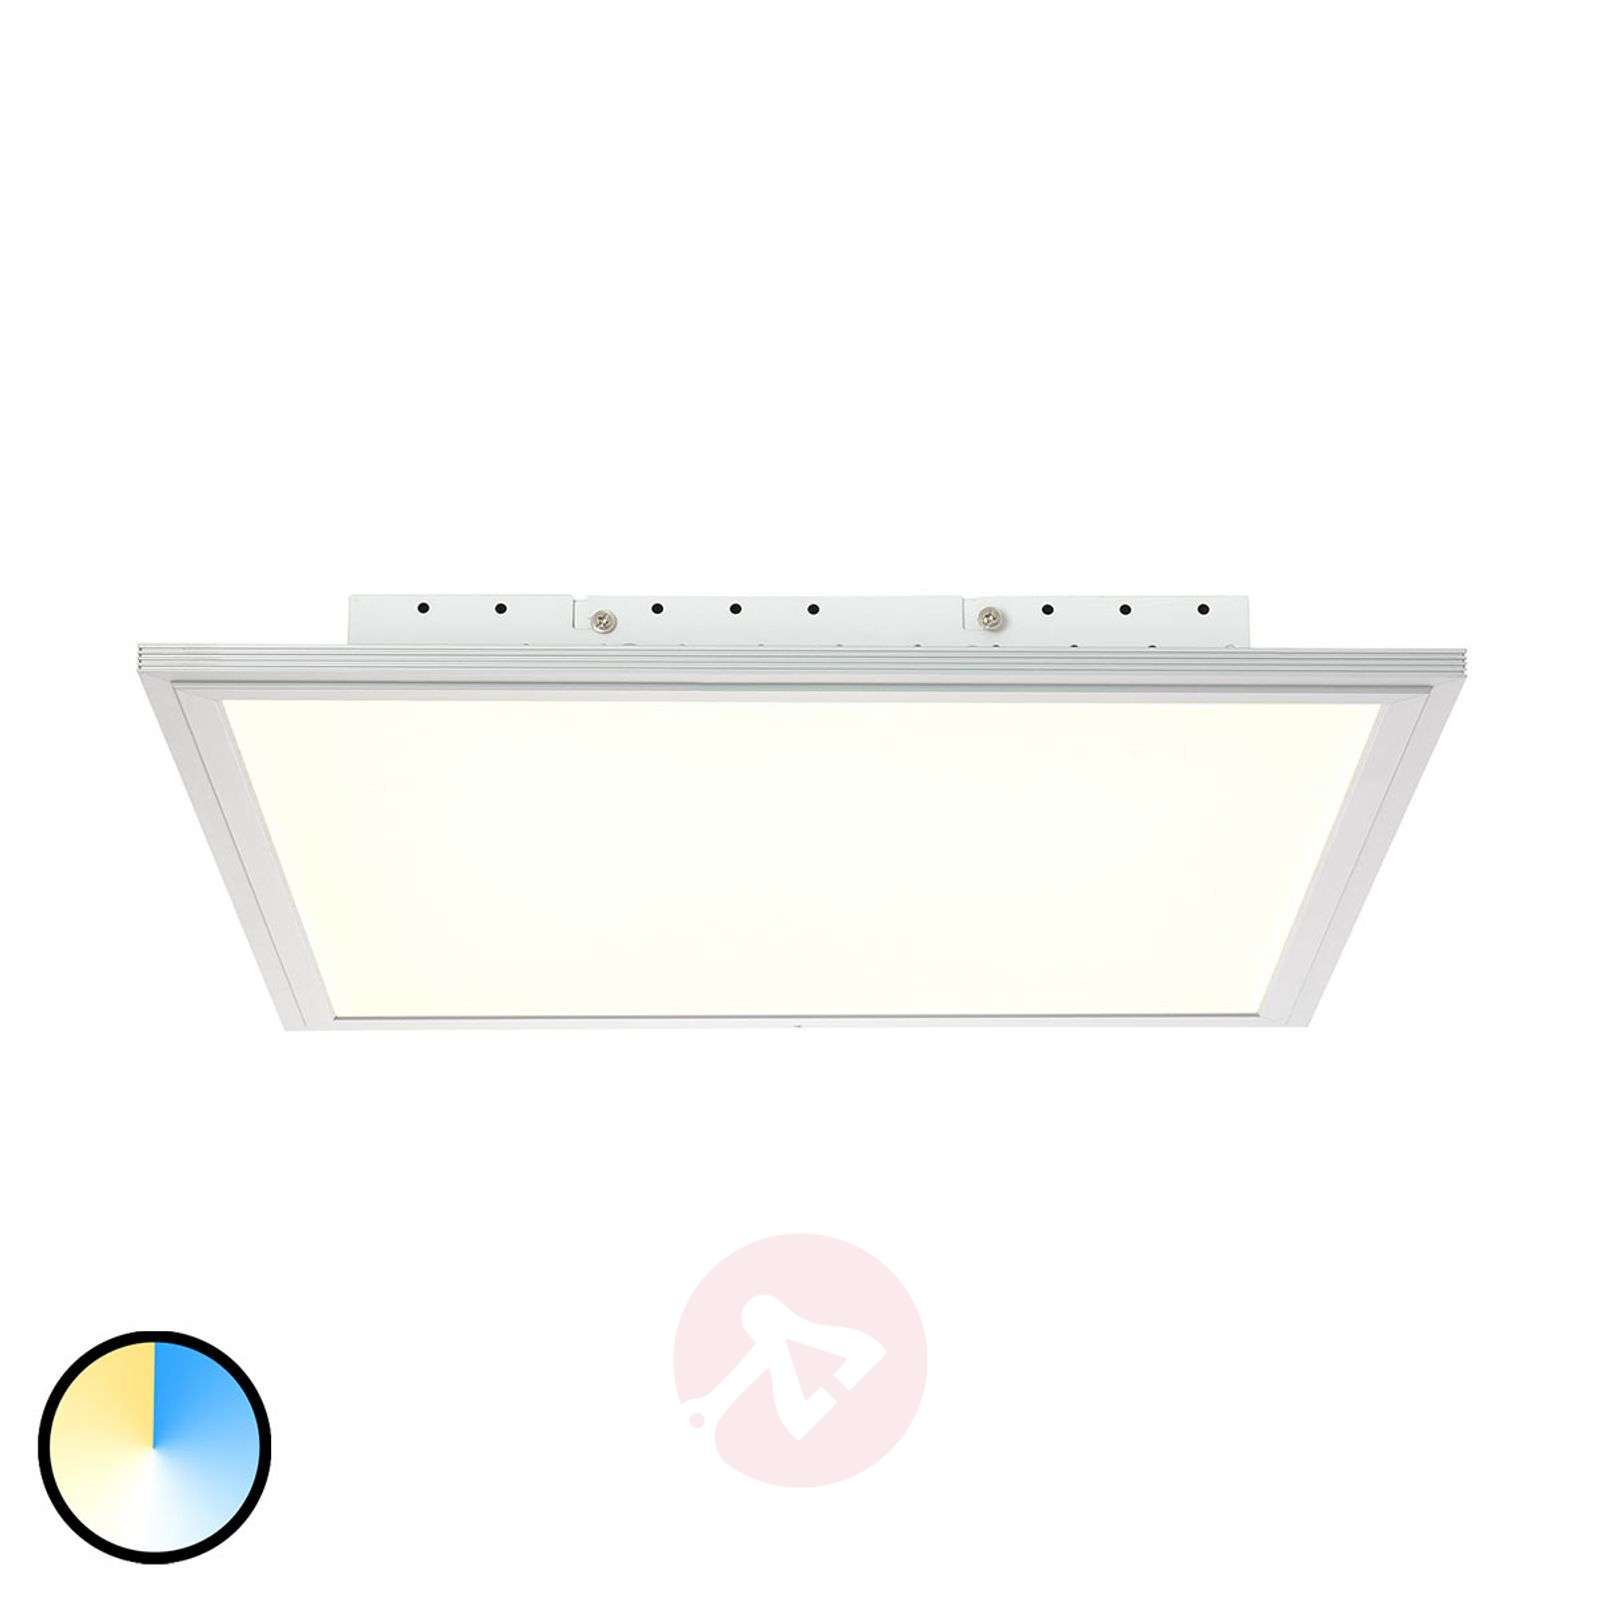 Brilliant WiZ lampa sufitowa LED Flat - 42 cm